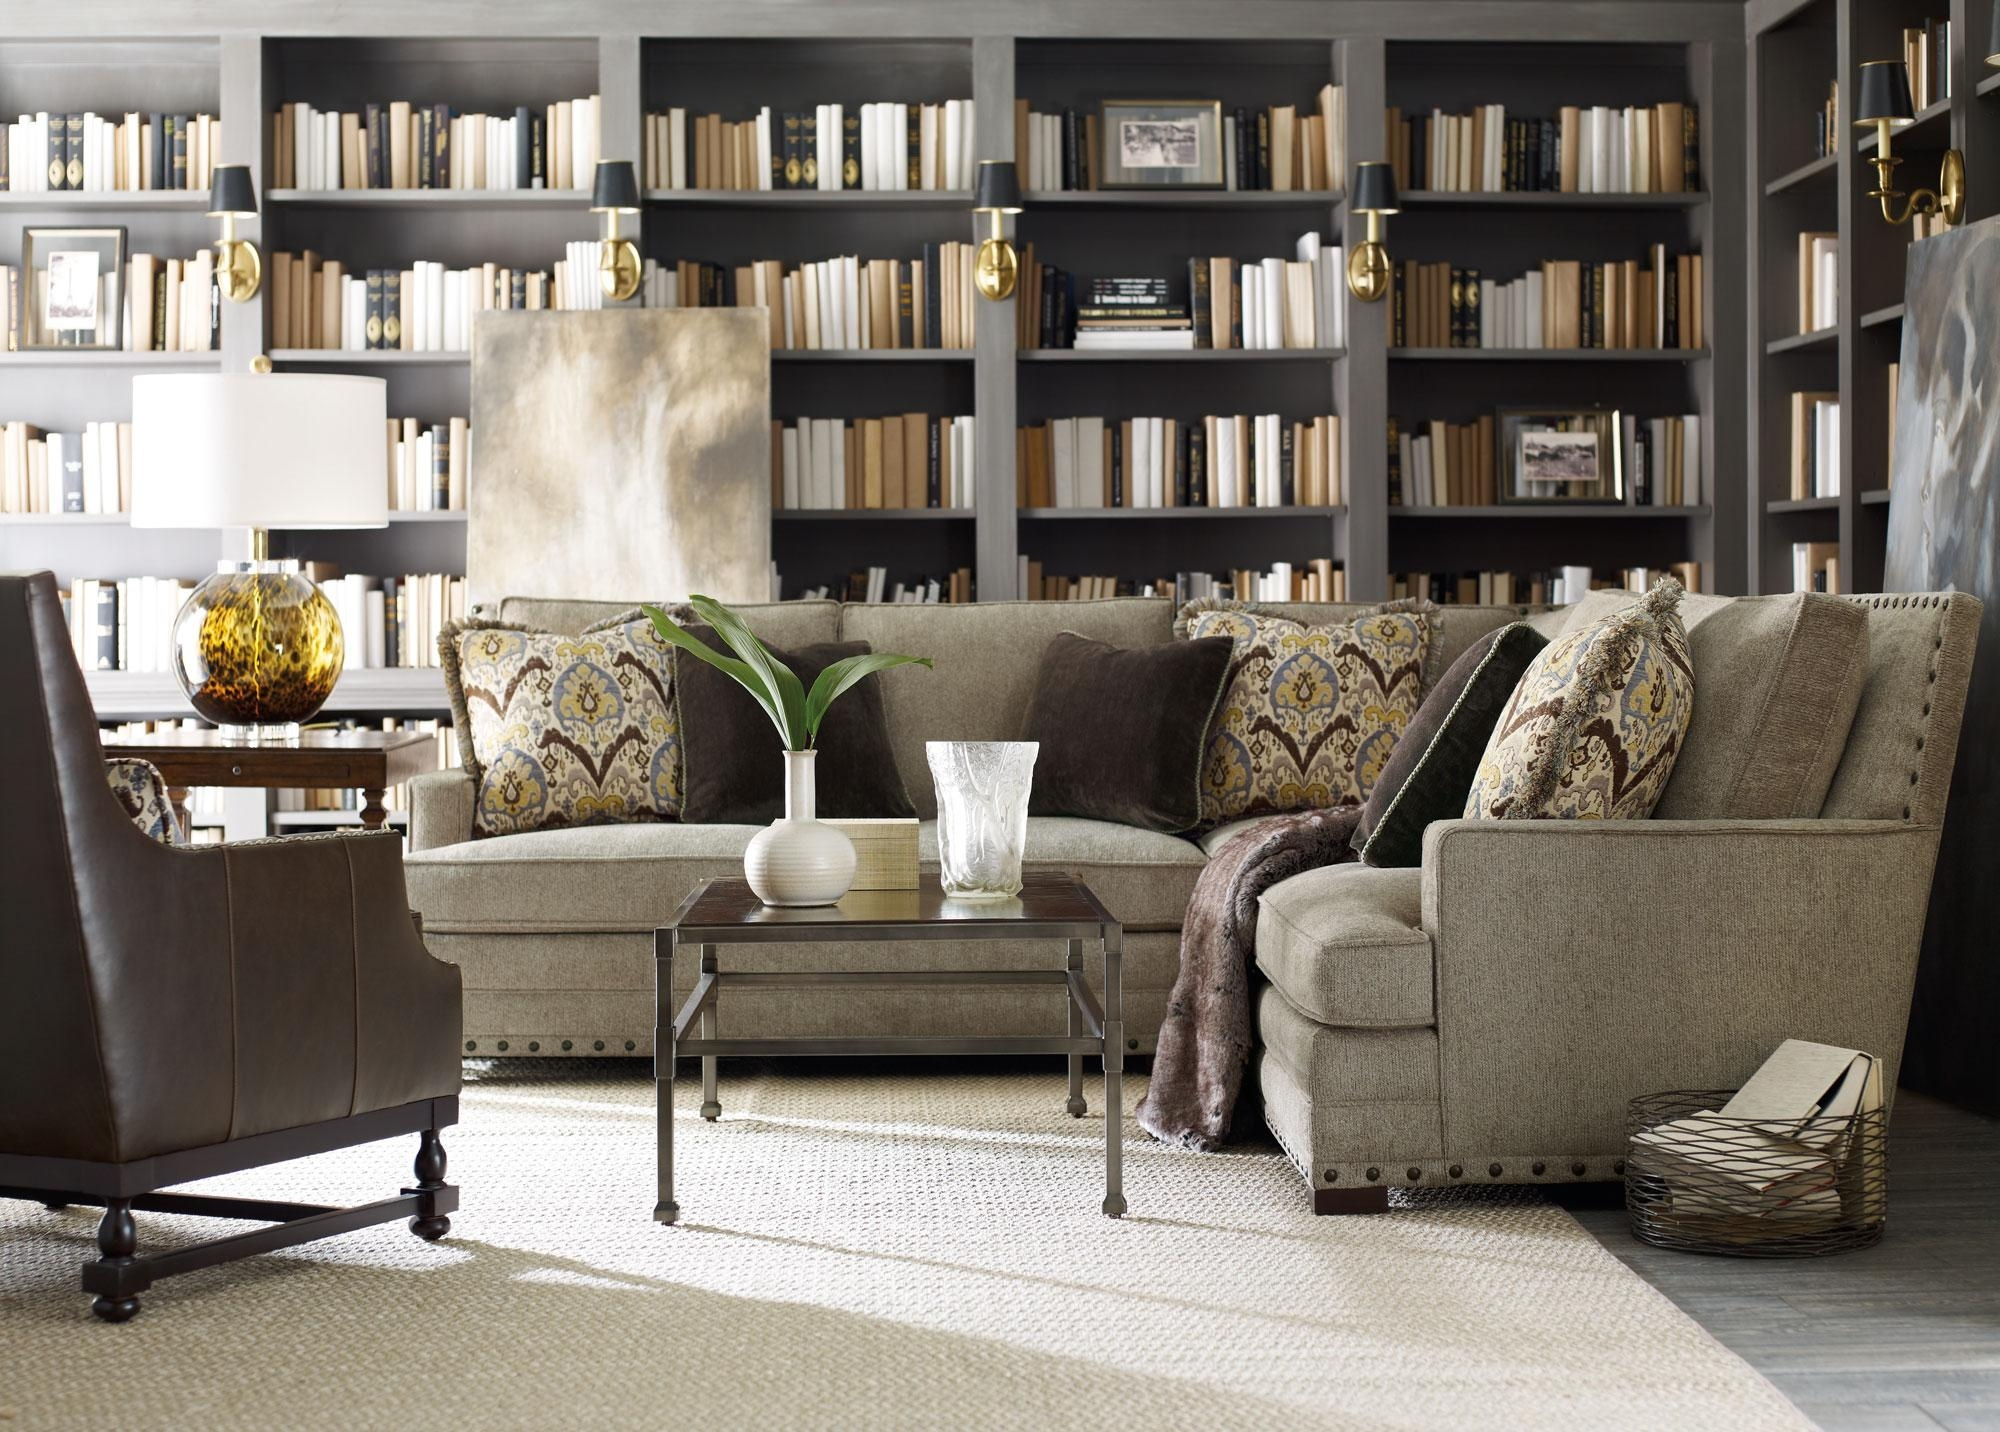 Bernhardt Brae Sofa With Concept Inspiration 10248 | Kengire For Bernhardt Brae Sofas (View 12 of 20)